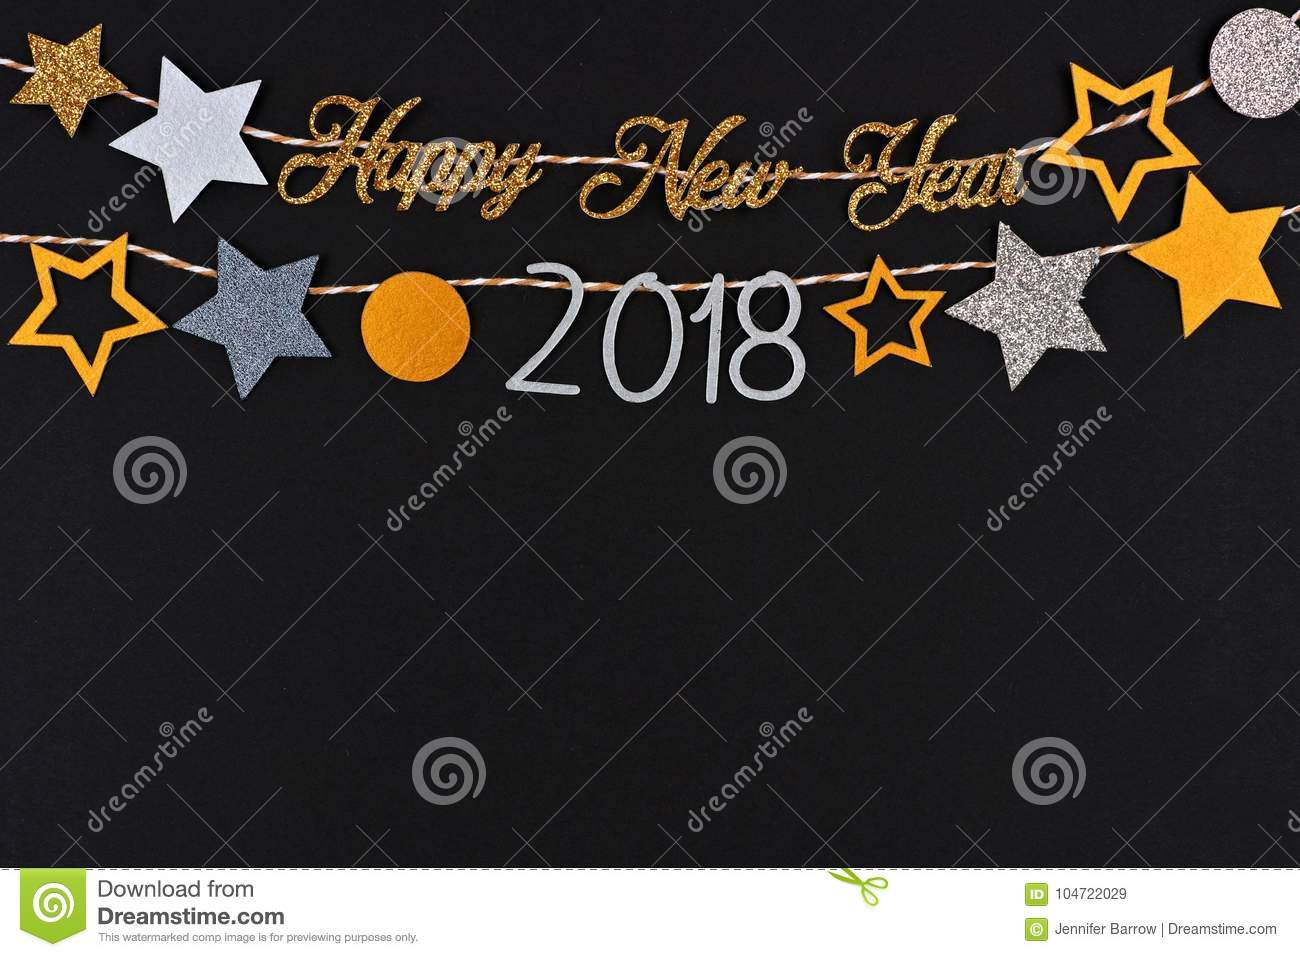 Happy New Year 2018 text banner with strings of stars against black